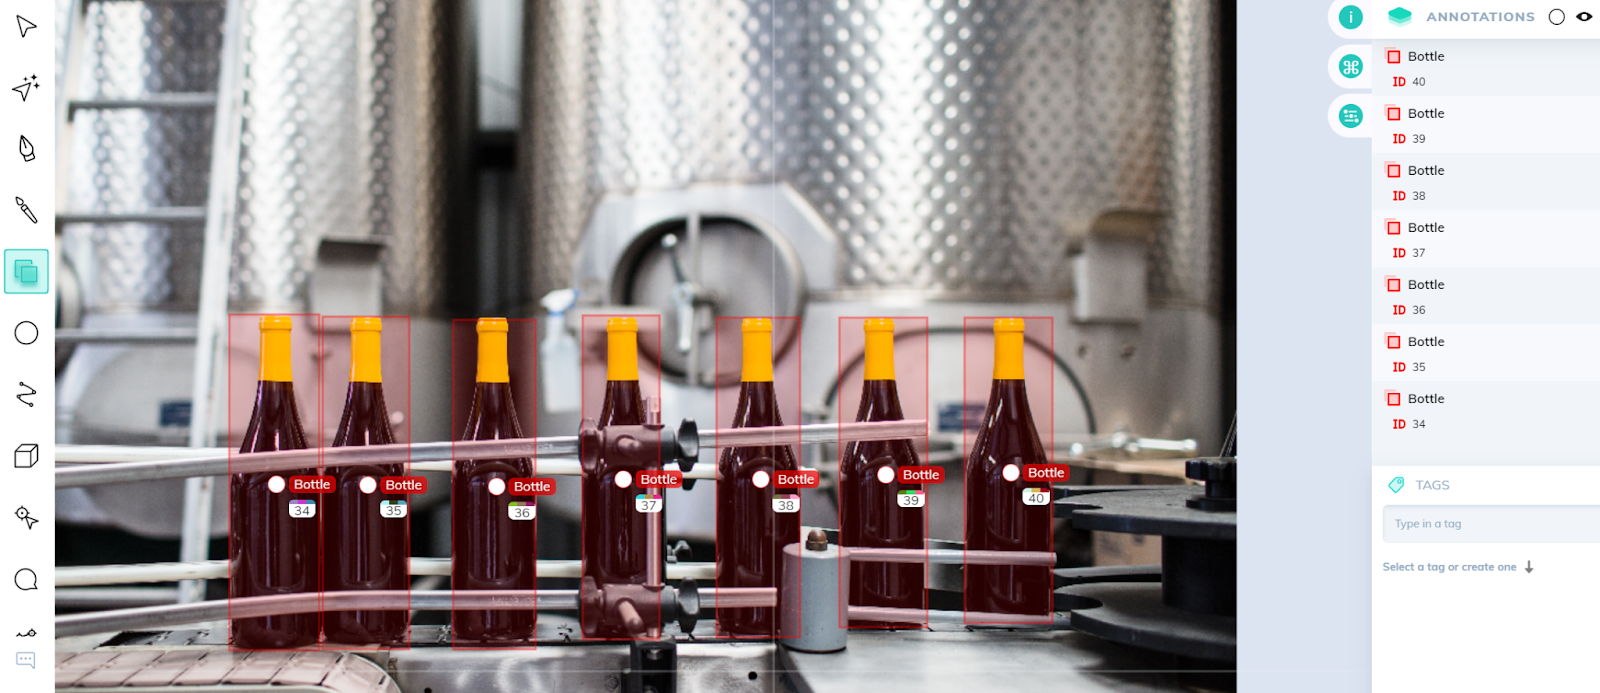 Bounding boxes applied to bottles in a product assembly line